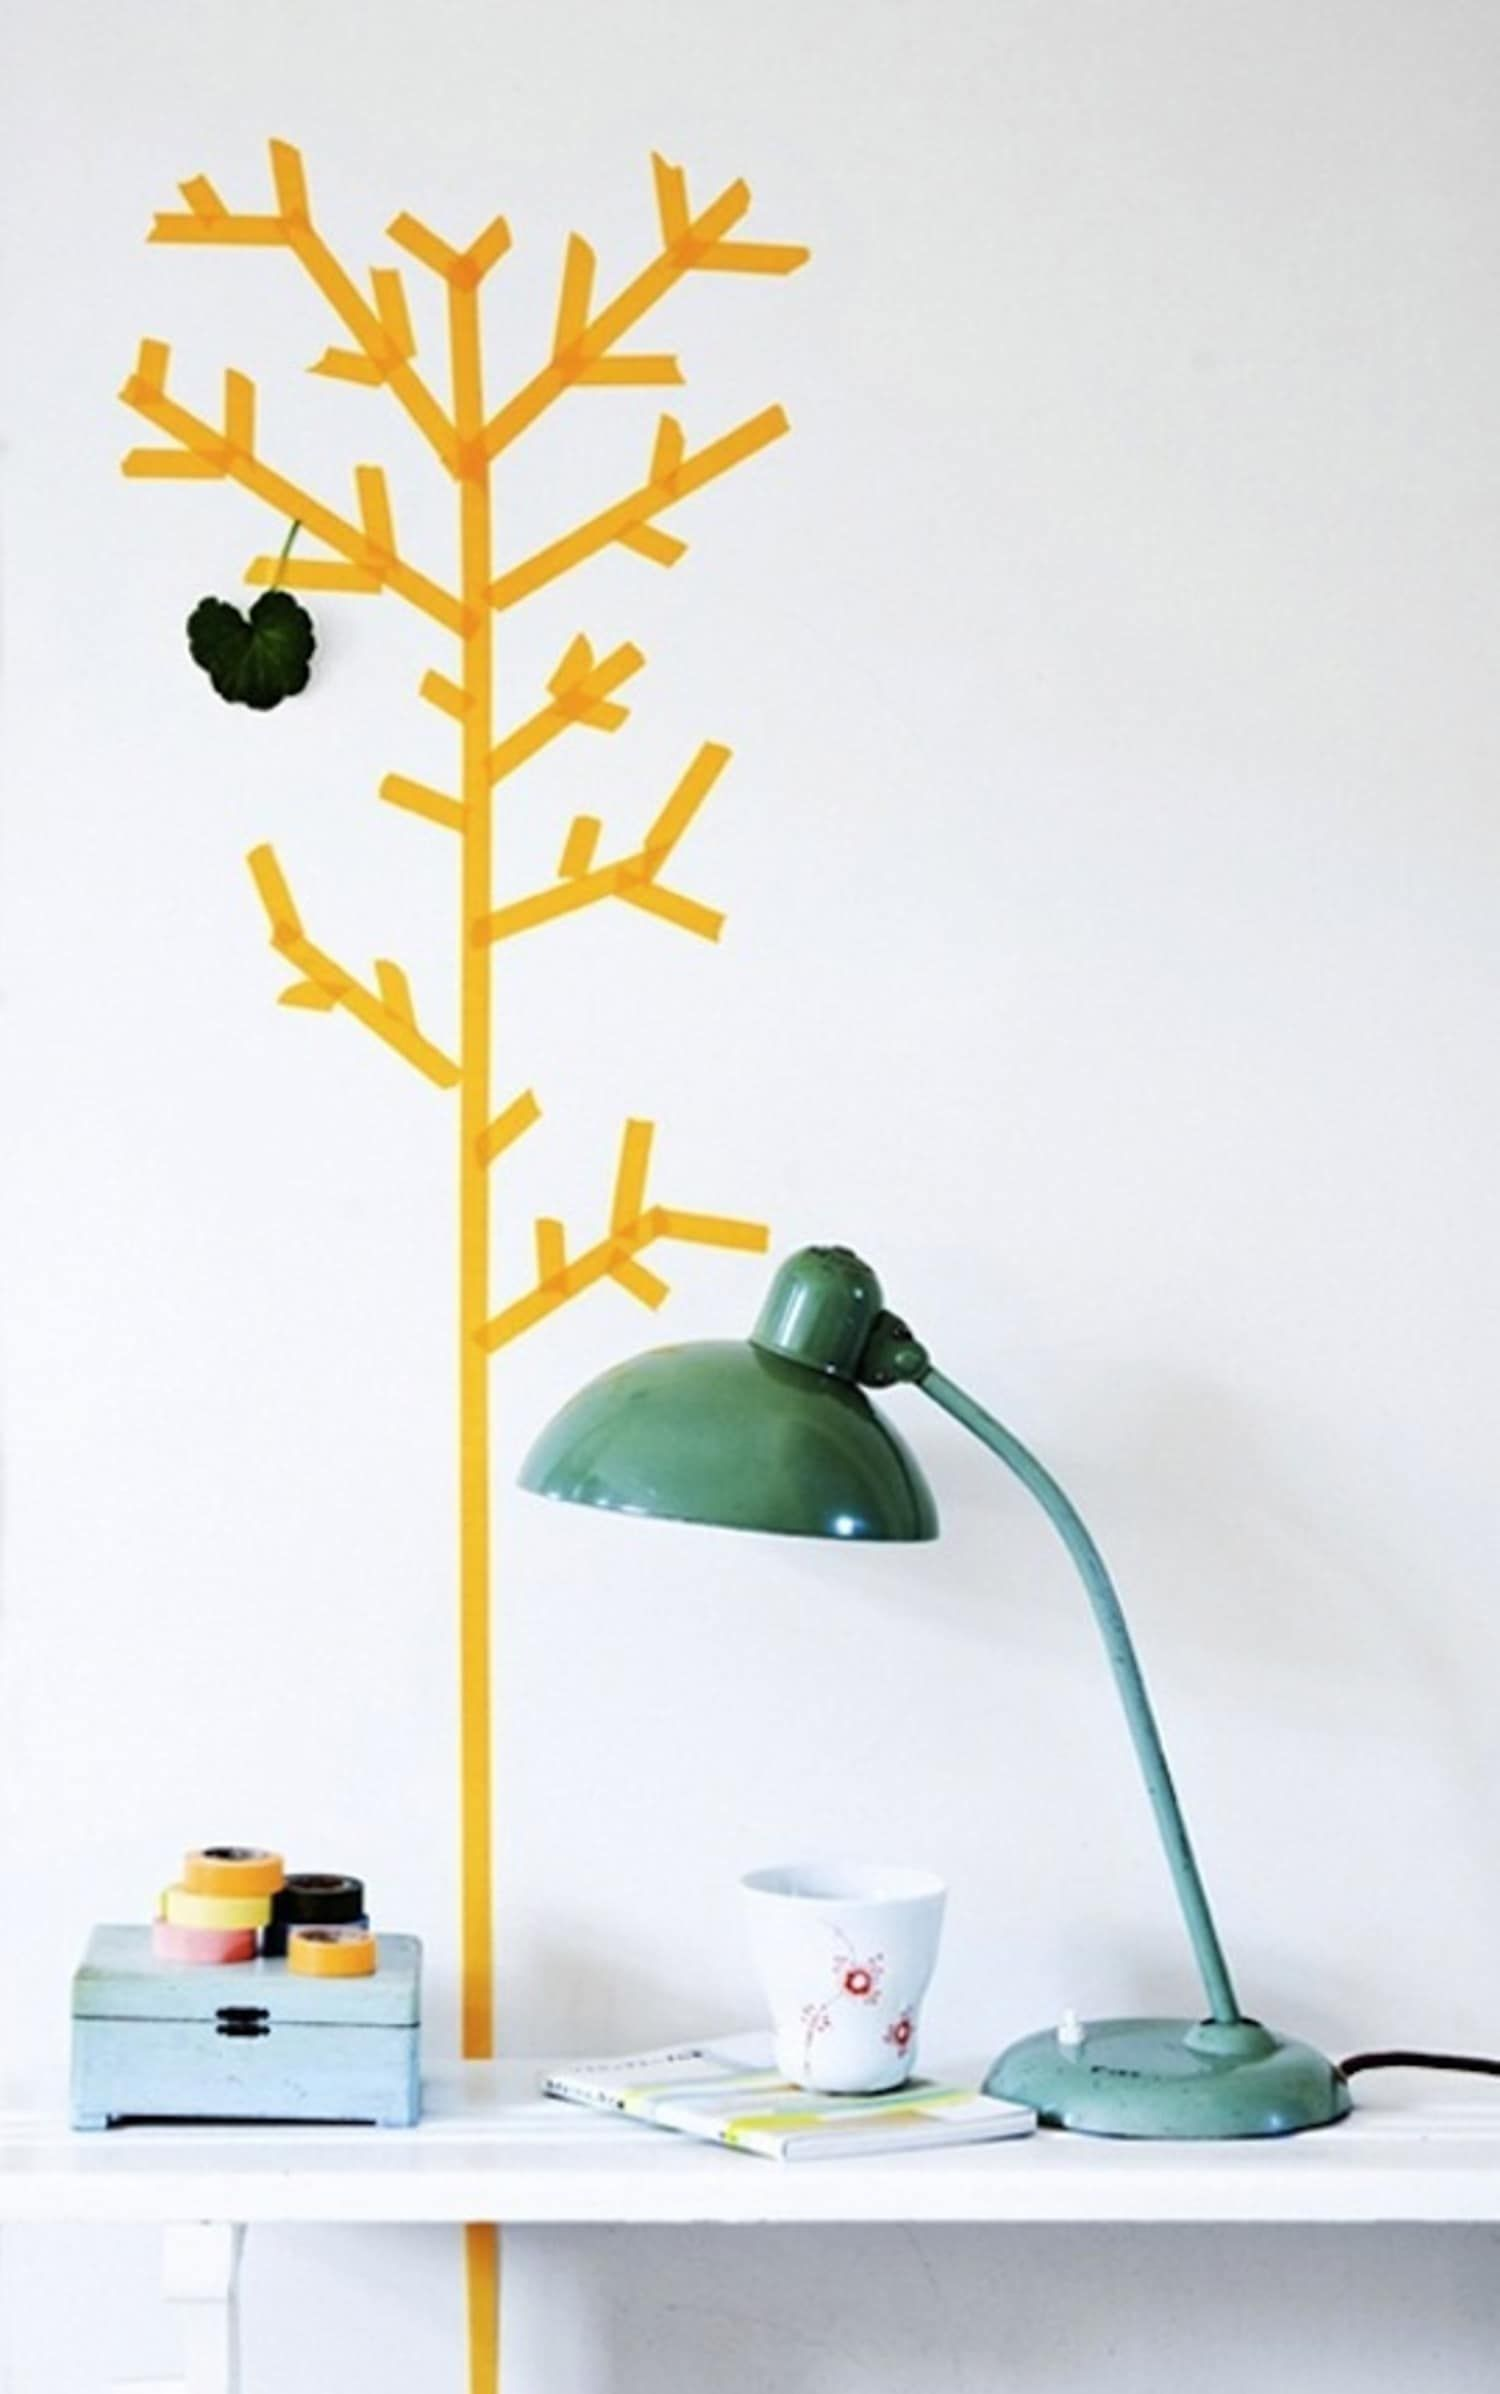 15 Washi Tape Project Ideas for Kids Rooms -   13 room decor Gold washi tape ideas